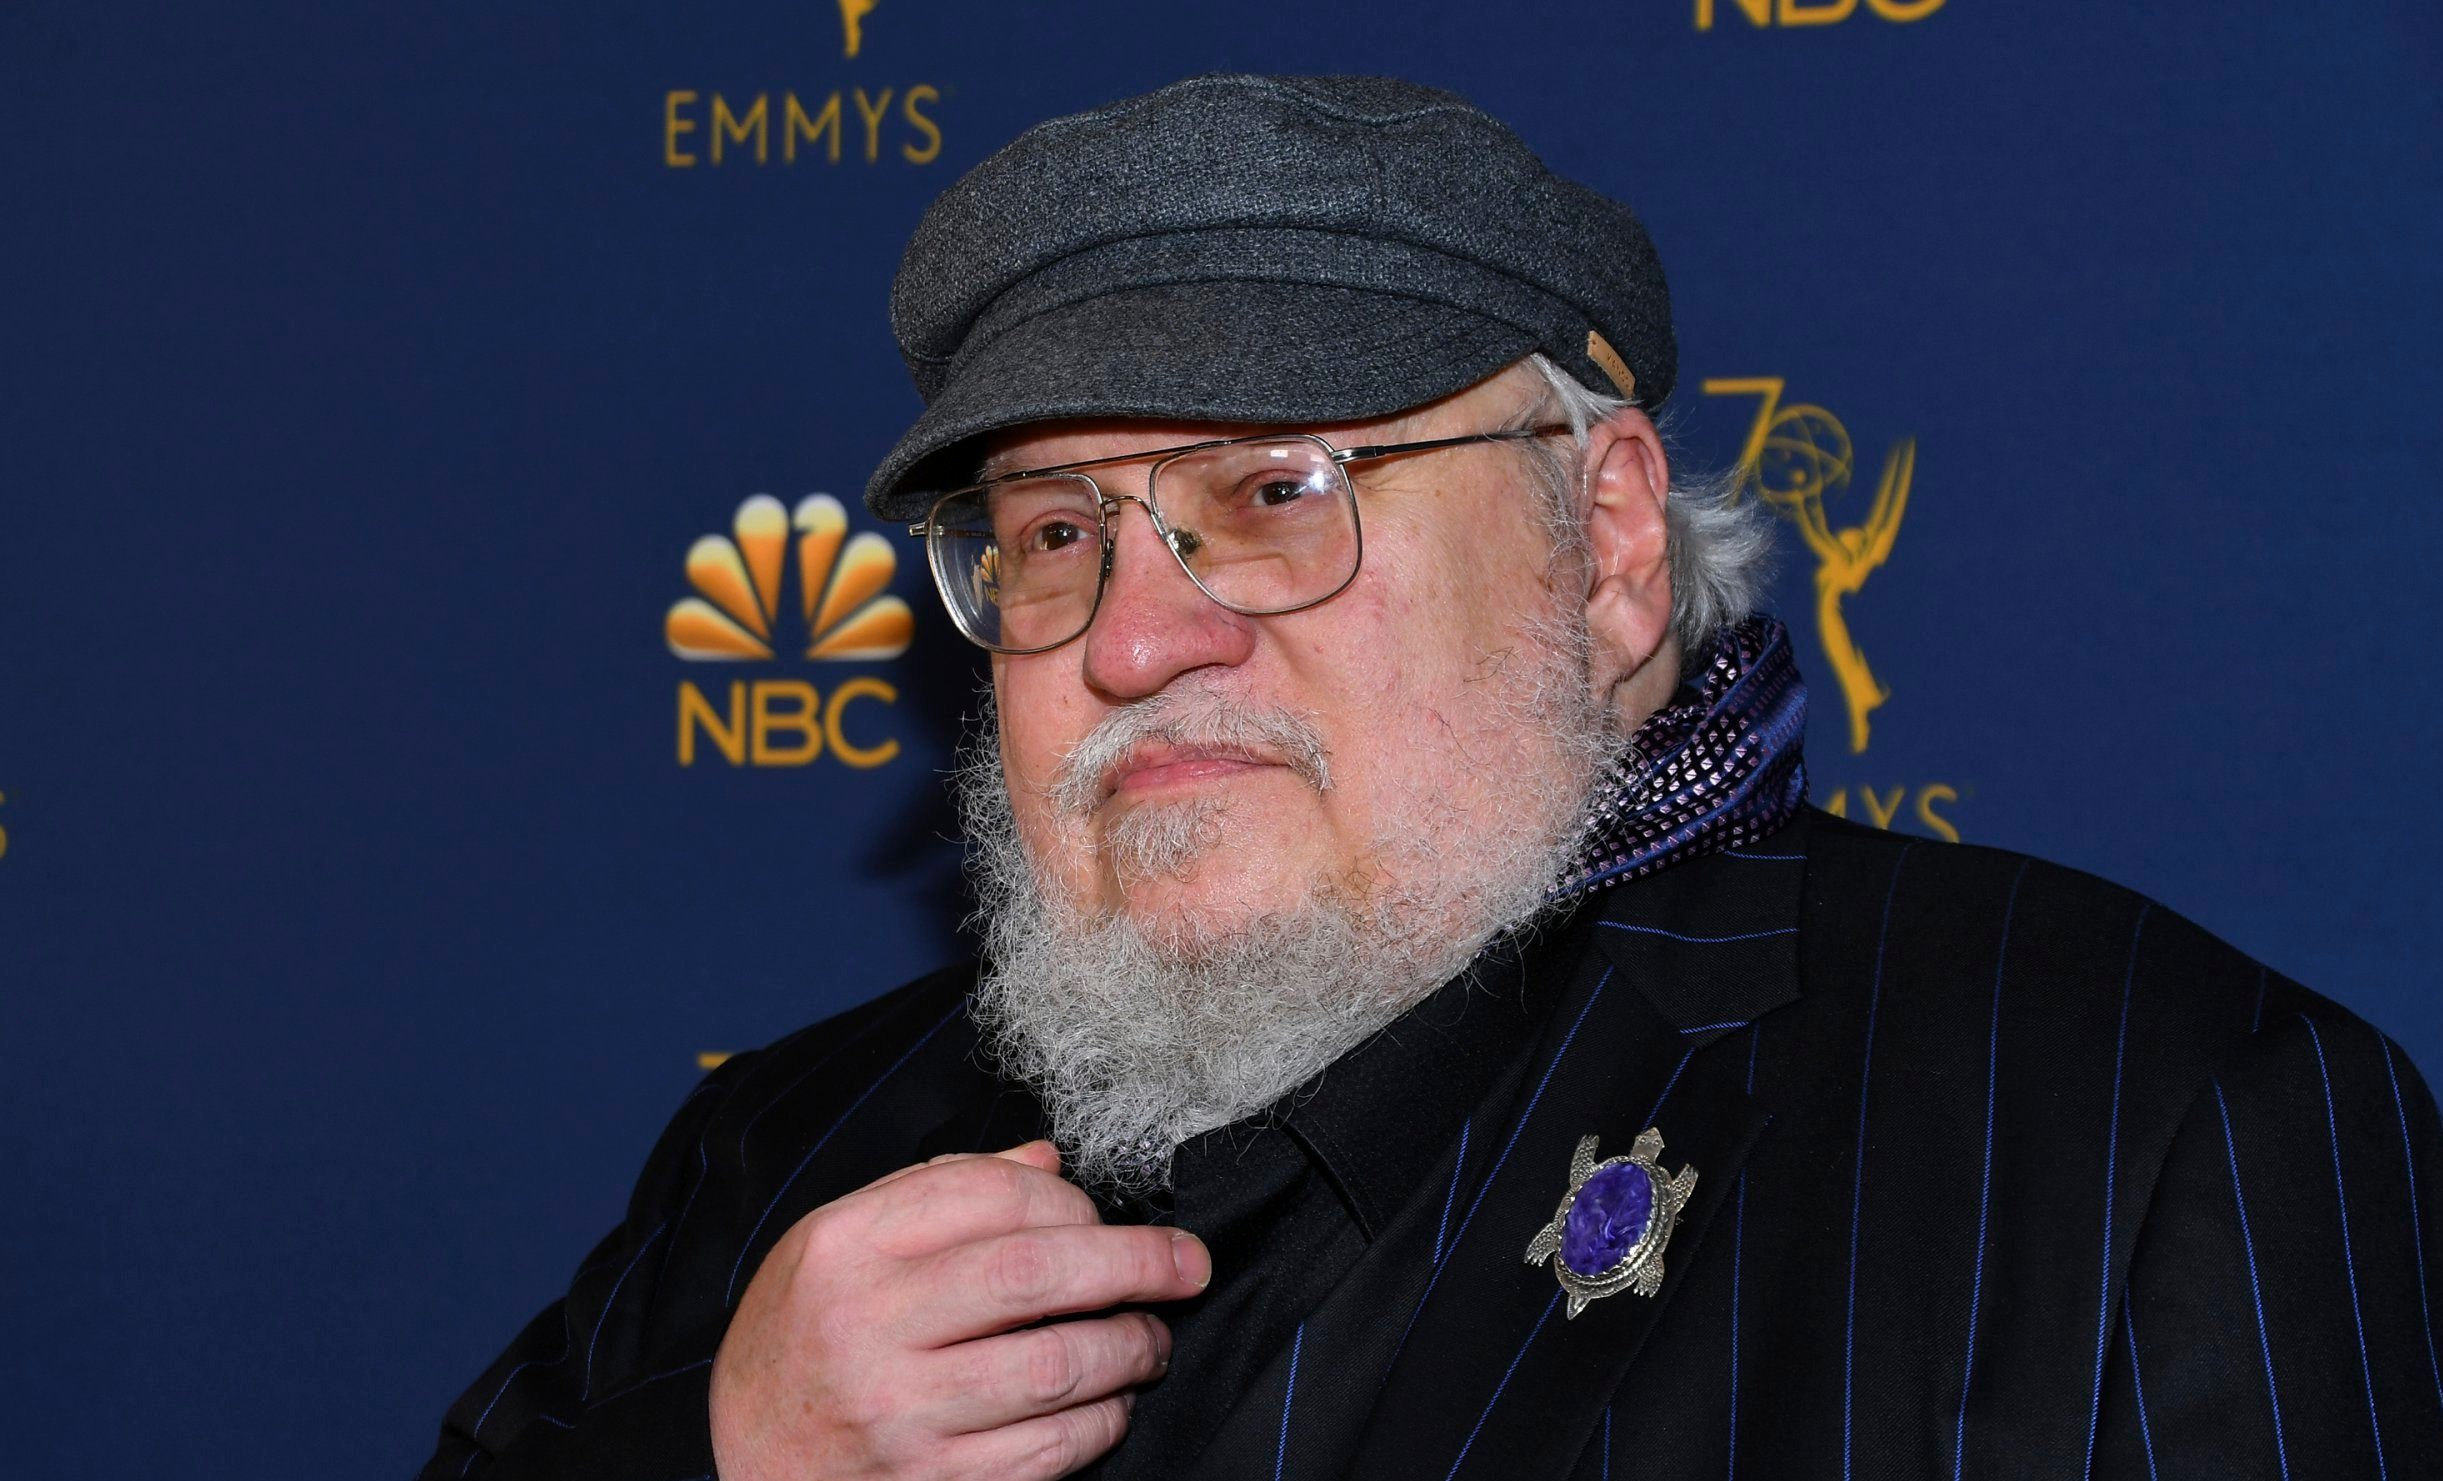 George RR Martin has Enough Time to Finish the Book